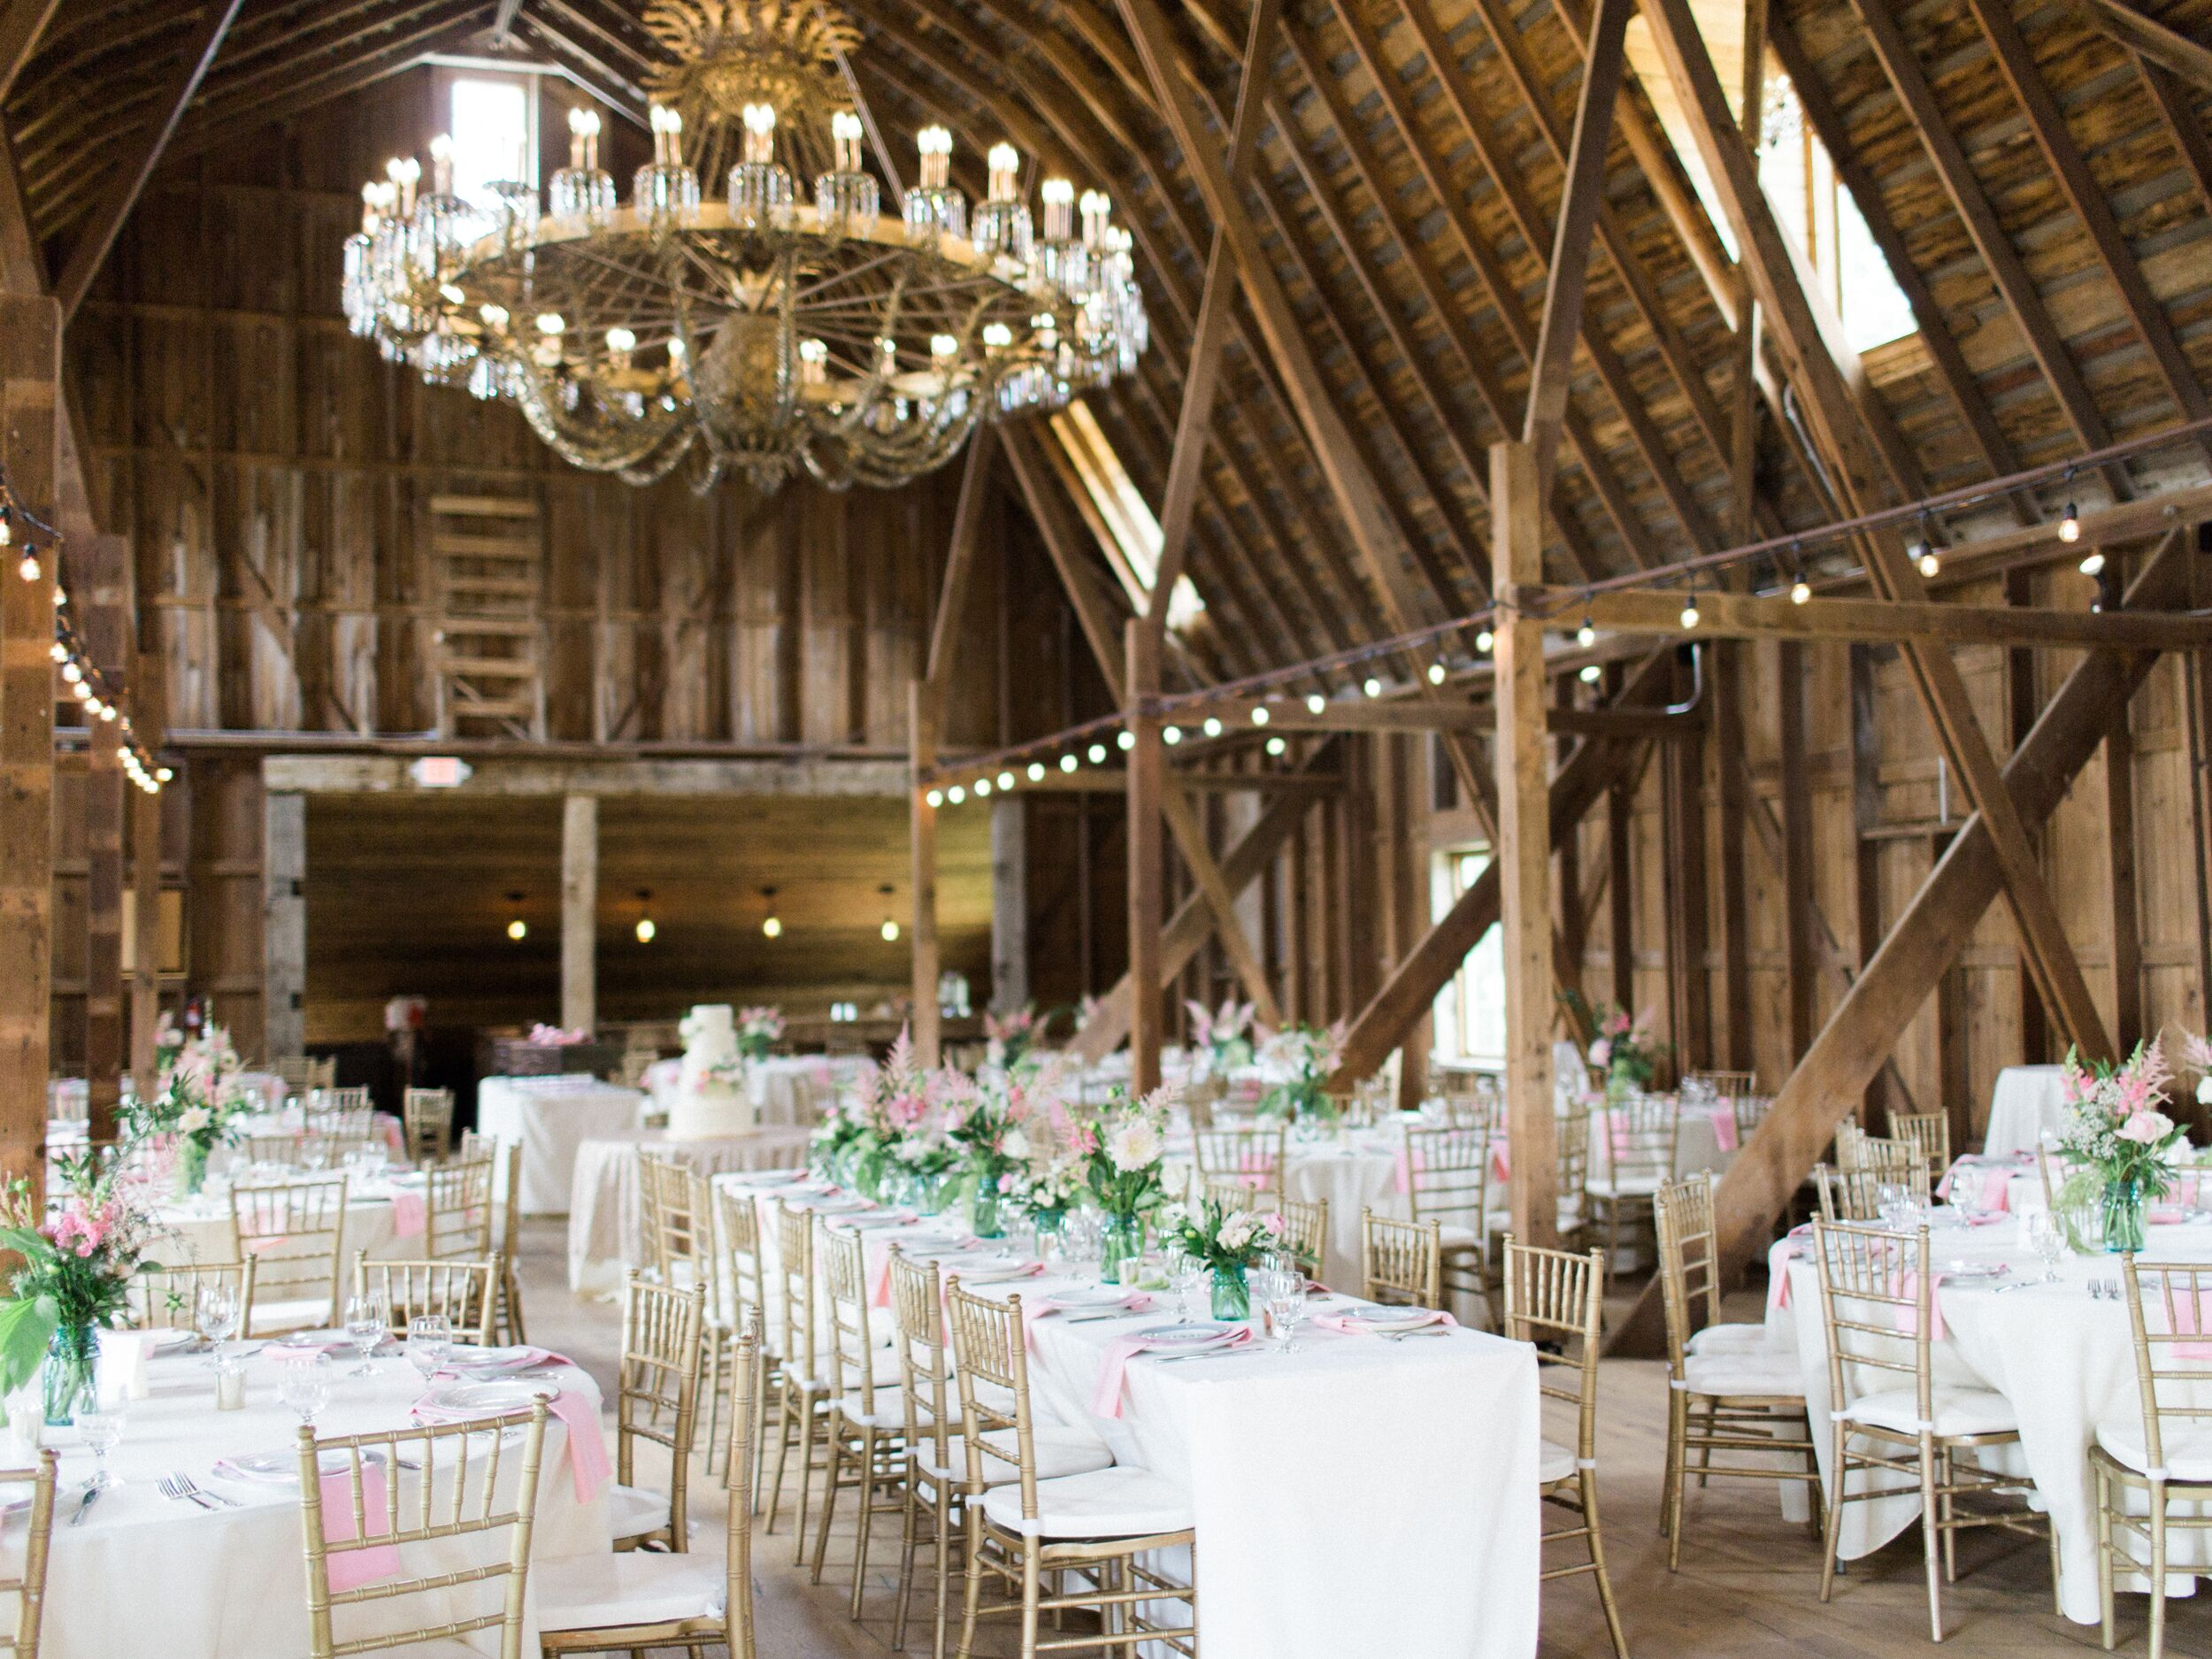 30 Expert Wedding Planning Tips and Tricks